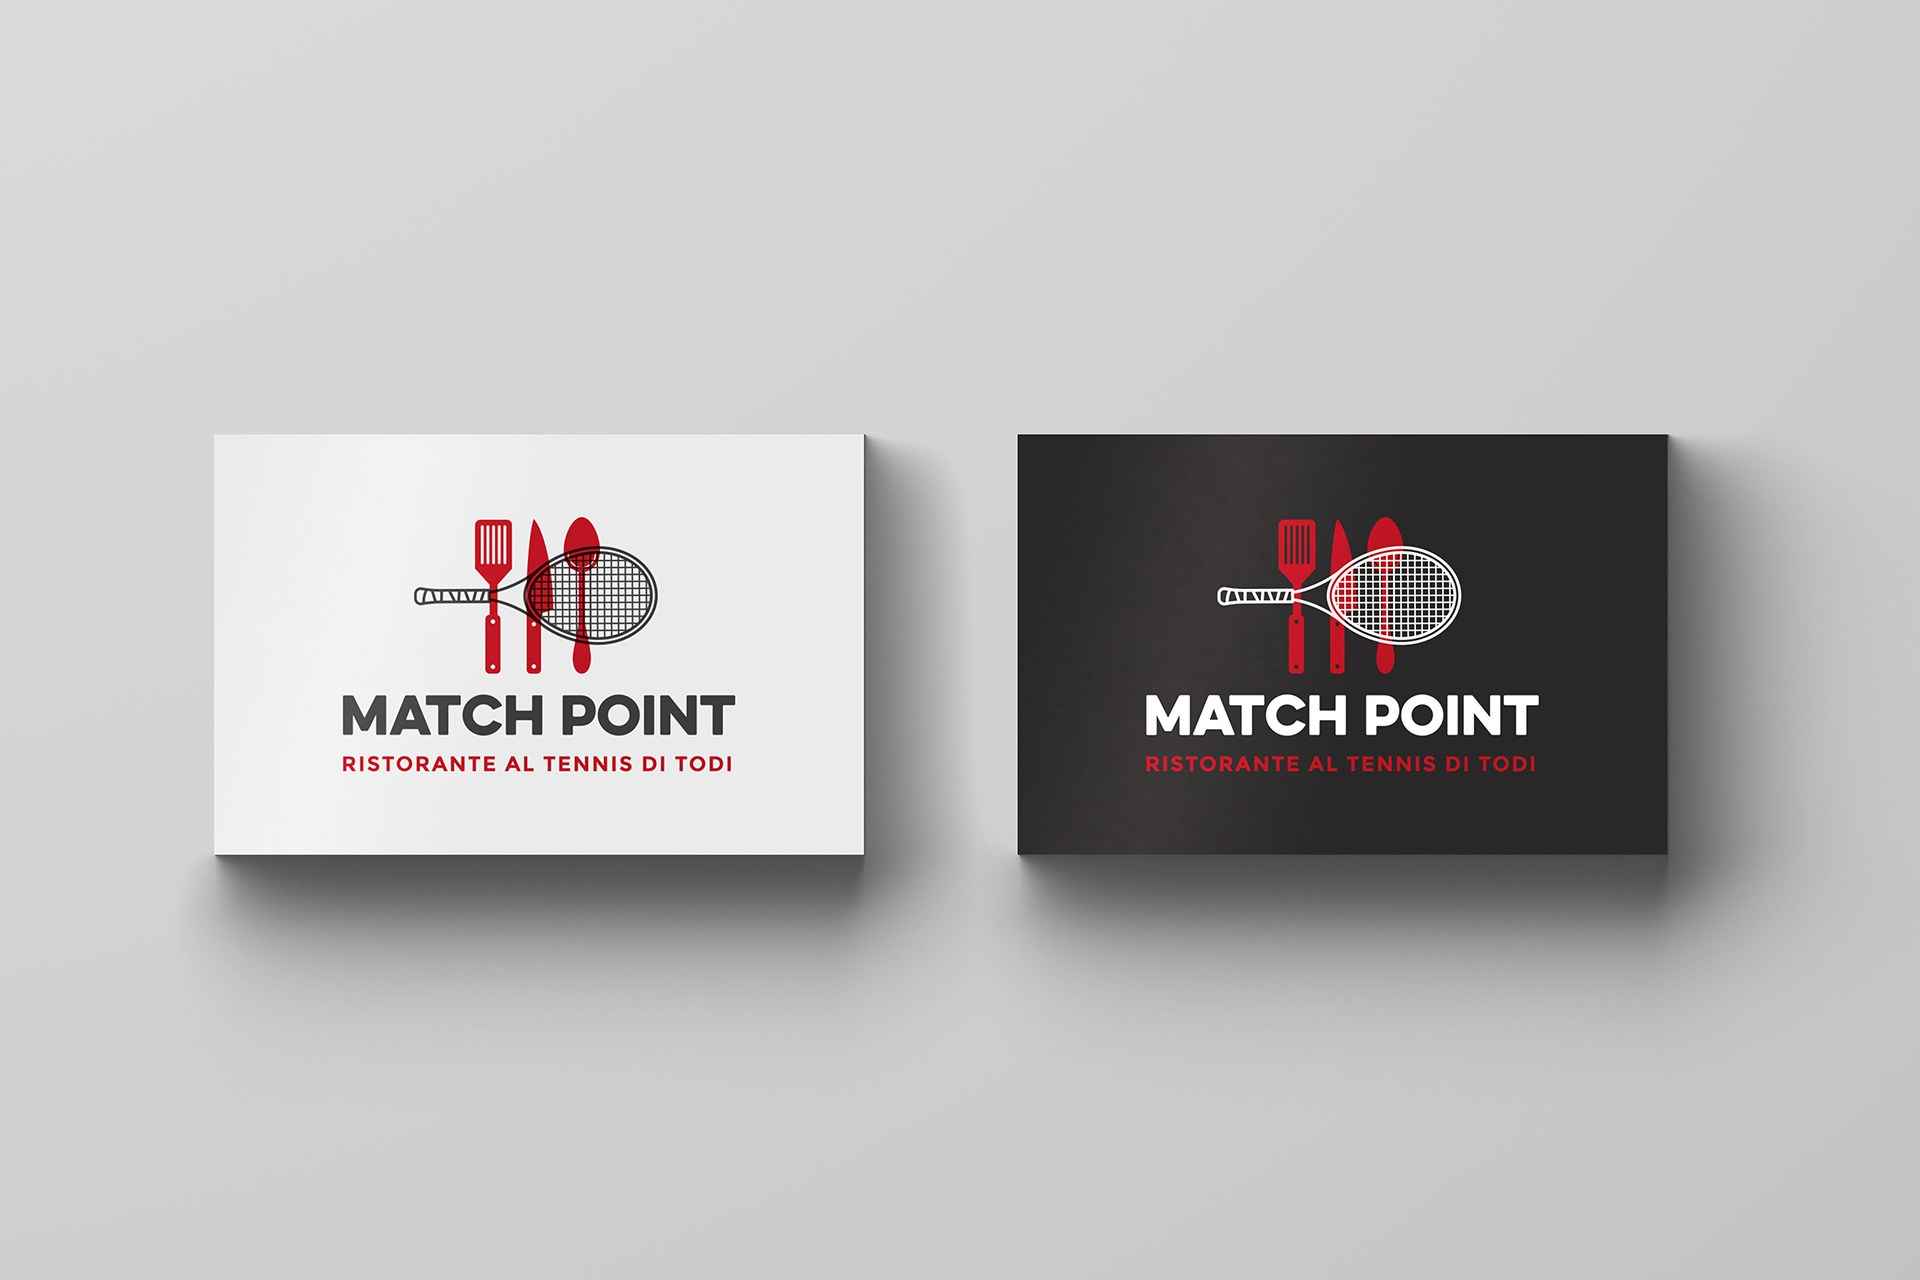 match-point-logo-scriptaimago